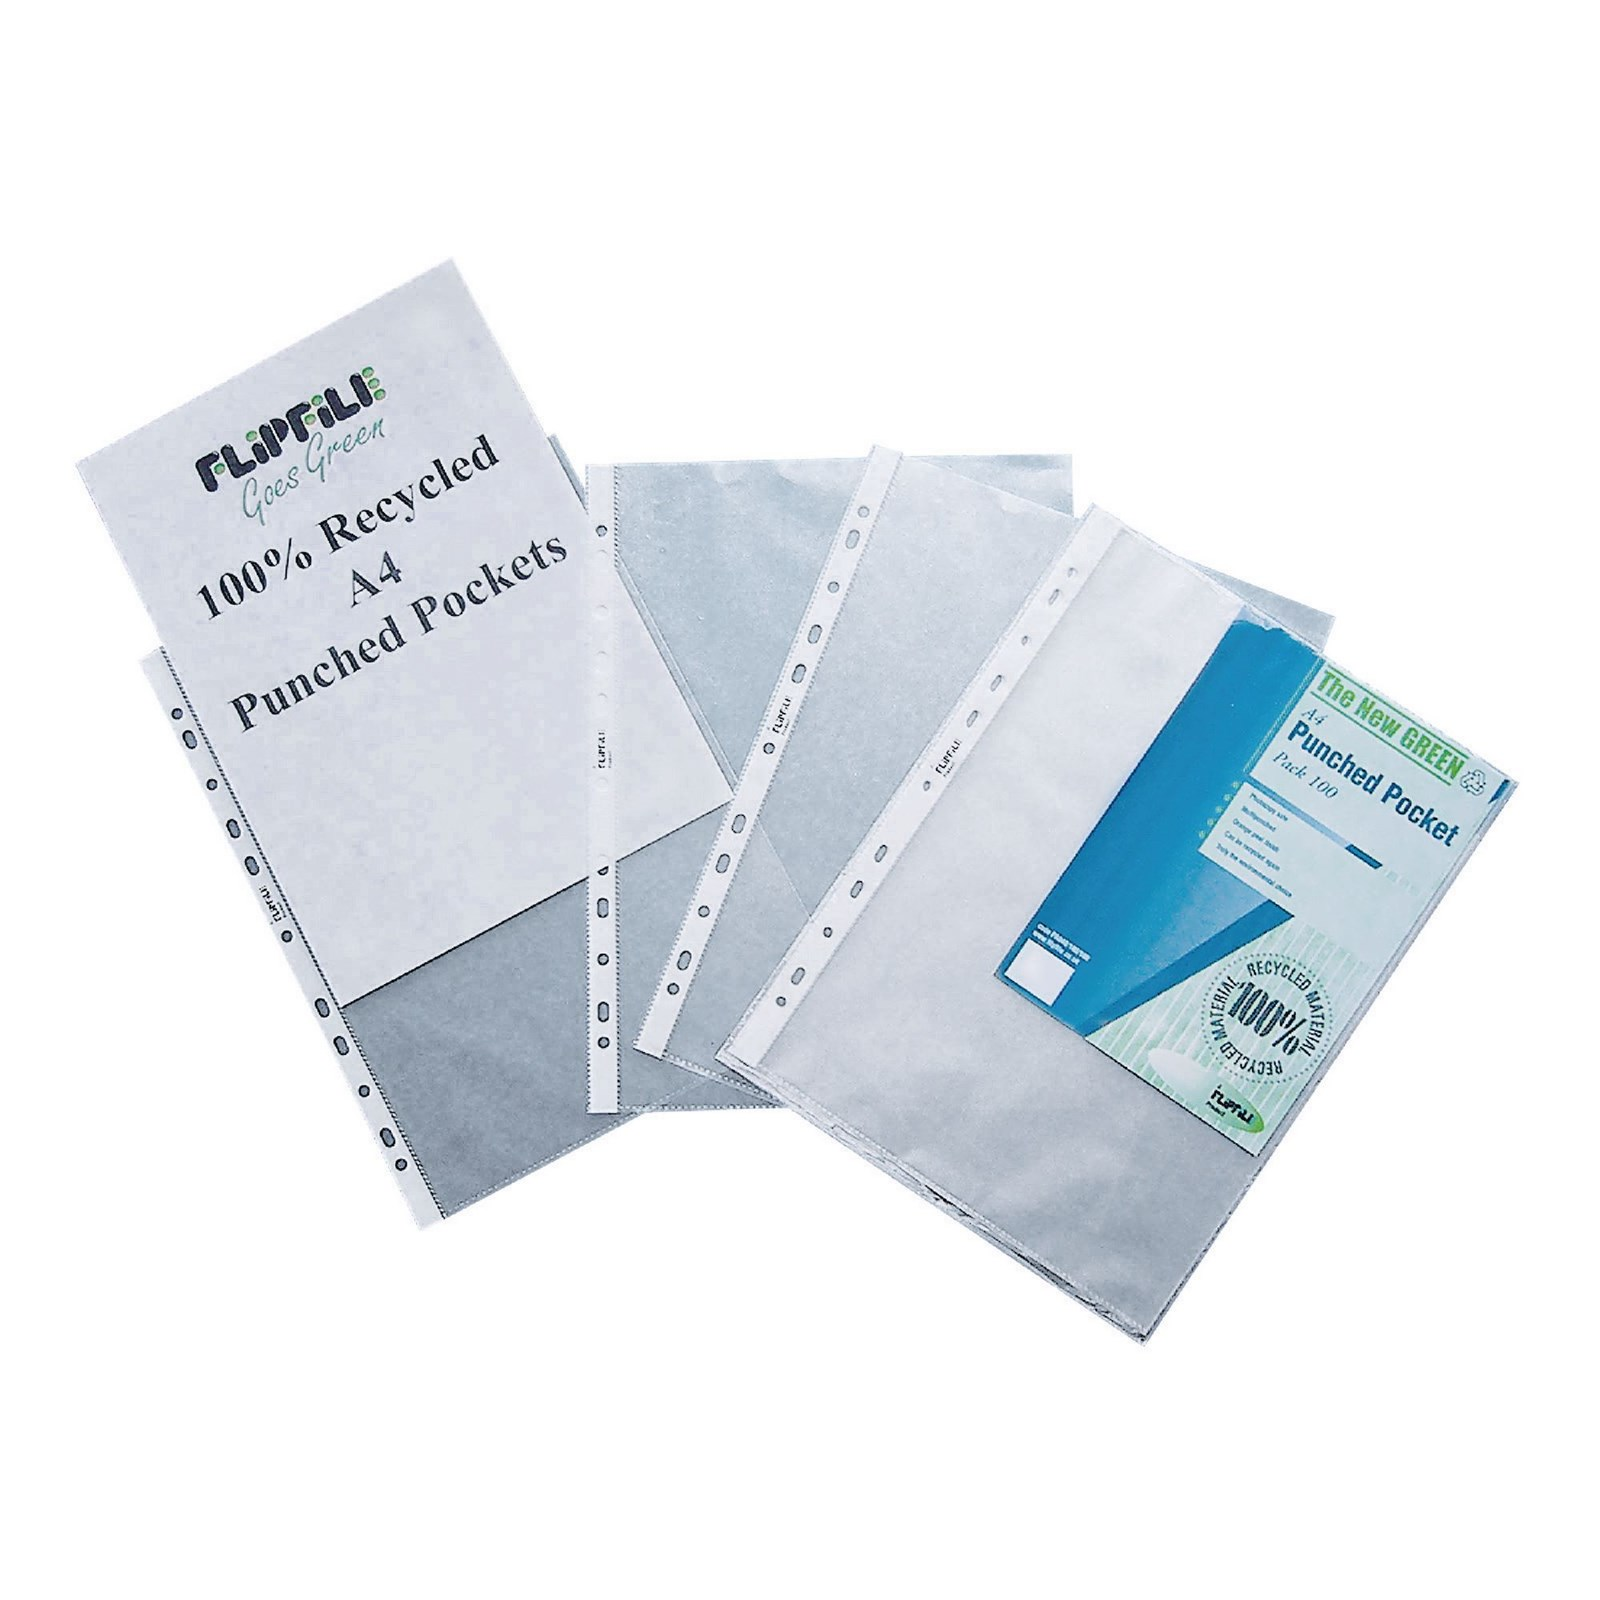 Flipfile Recycled Punched Pocket A4 Clear - Pack of 100